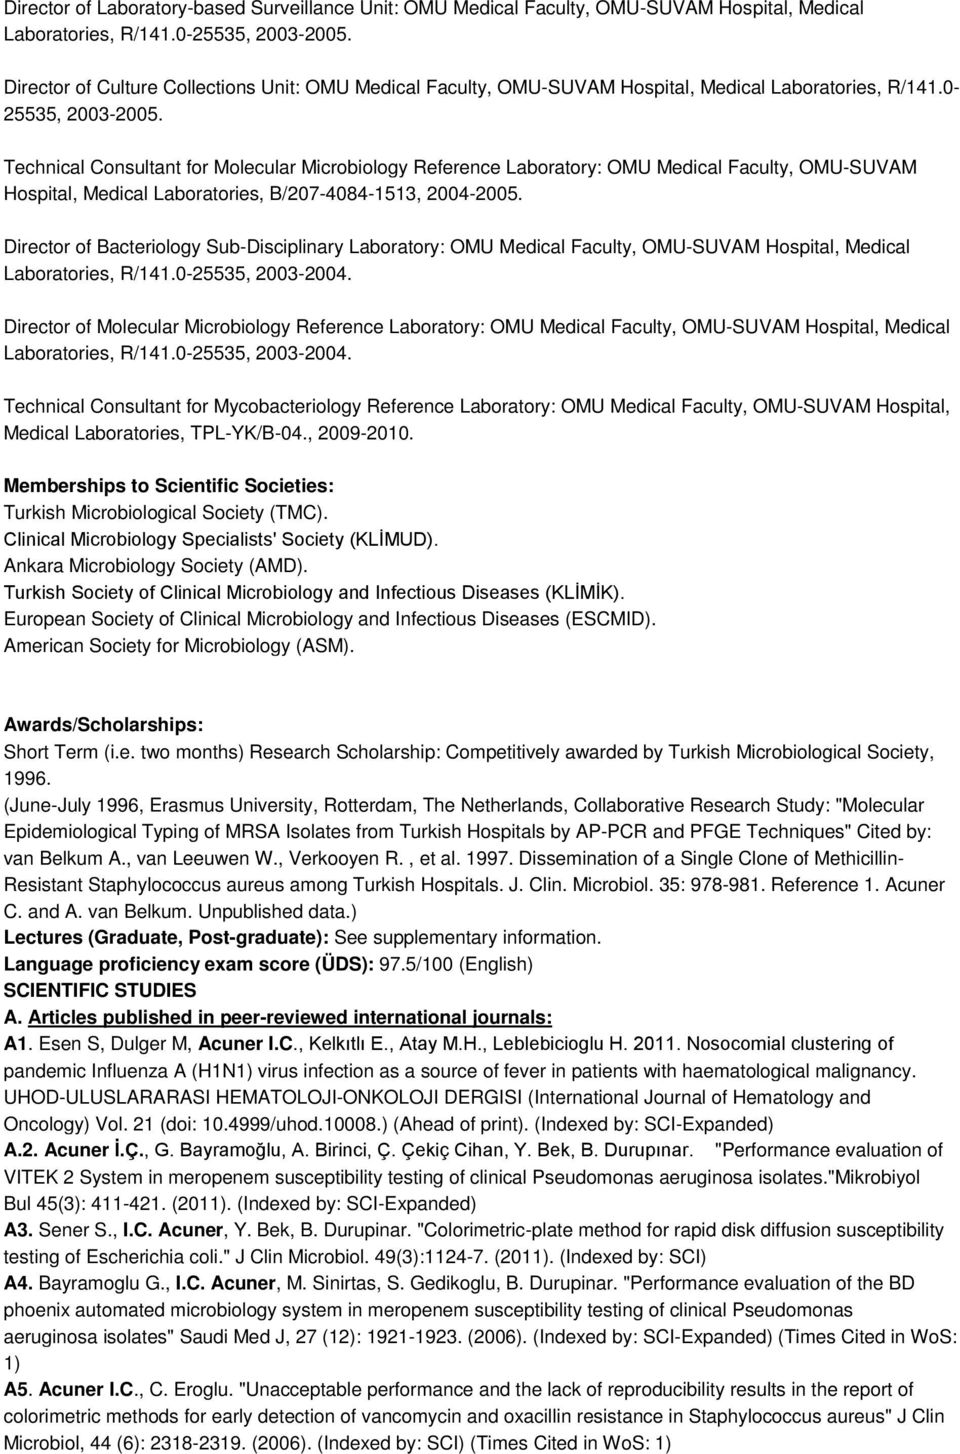 Technical Consultant for Molecular Microbiology Reference Laboratory: OMU Medical Faculty, OMU-SUVAM Hospital, Medical Laboratories, B/207-4084-1513, 2004-2005.